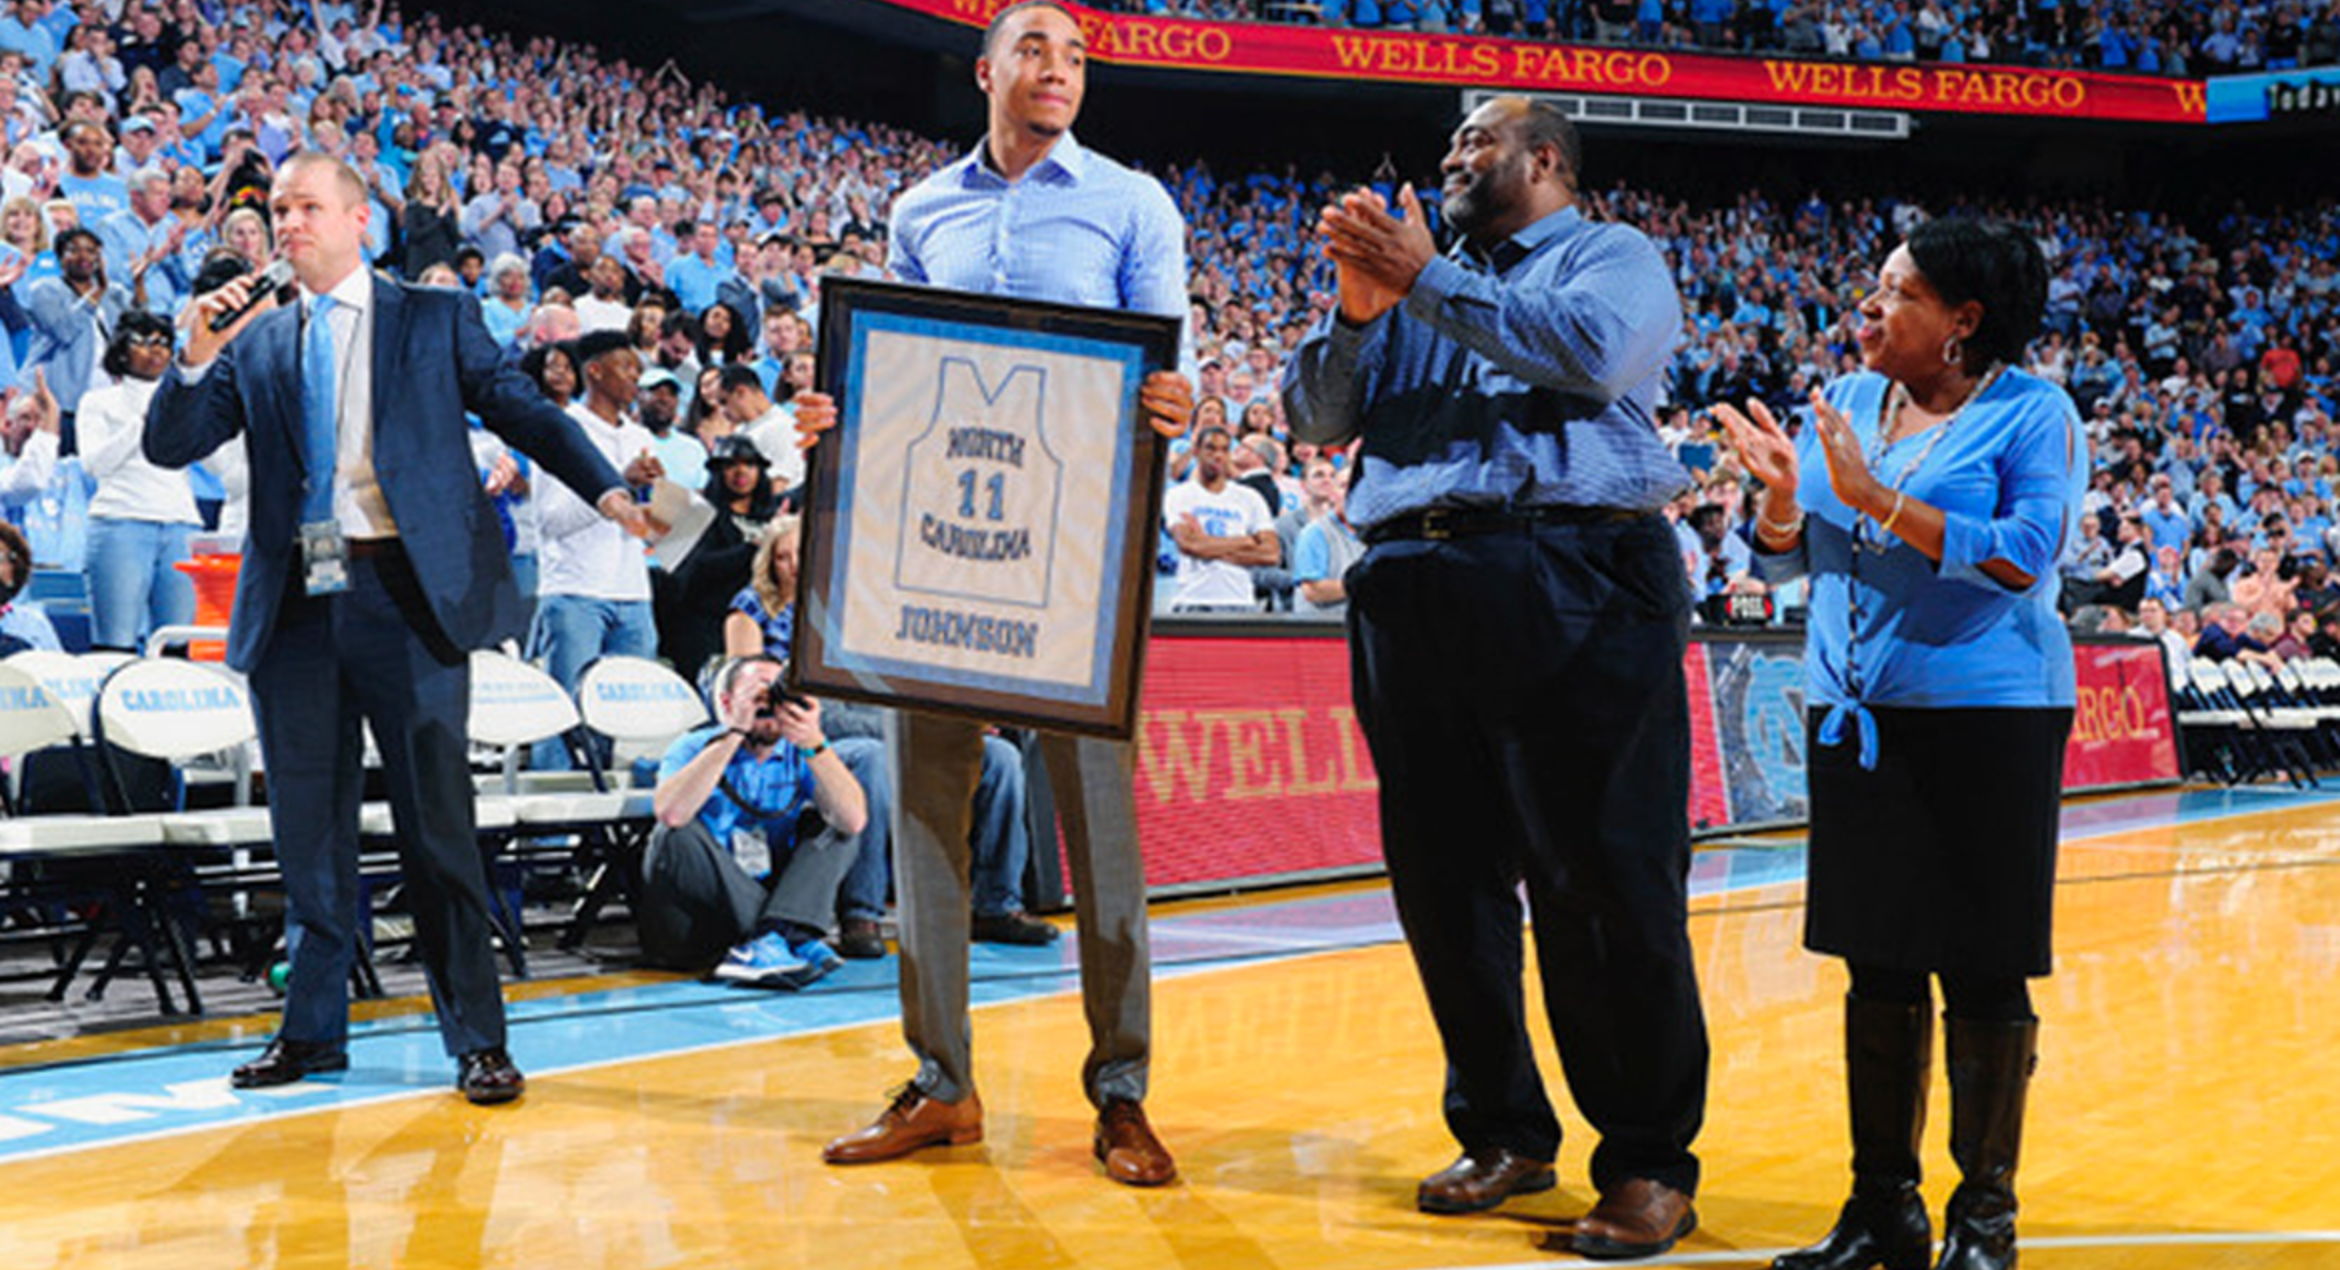 Johnson Honored At UNC, As Frustrating Rookie Year Starts Looking Up